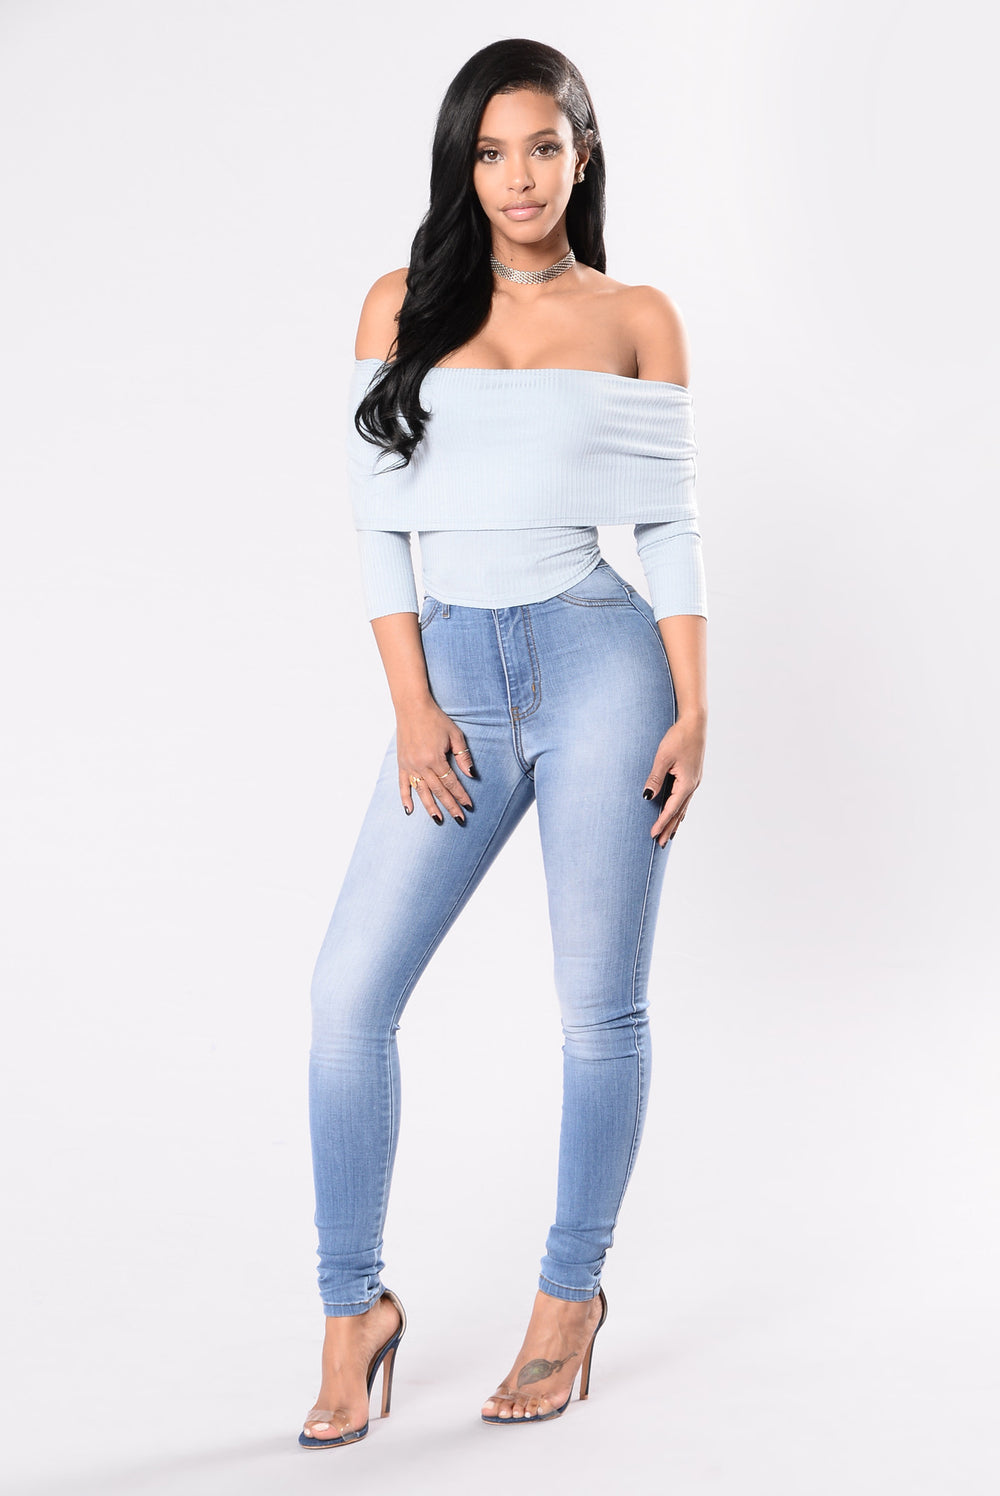 Be My Muse Top - Dusty Blue